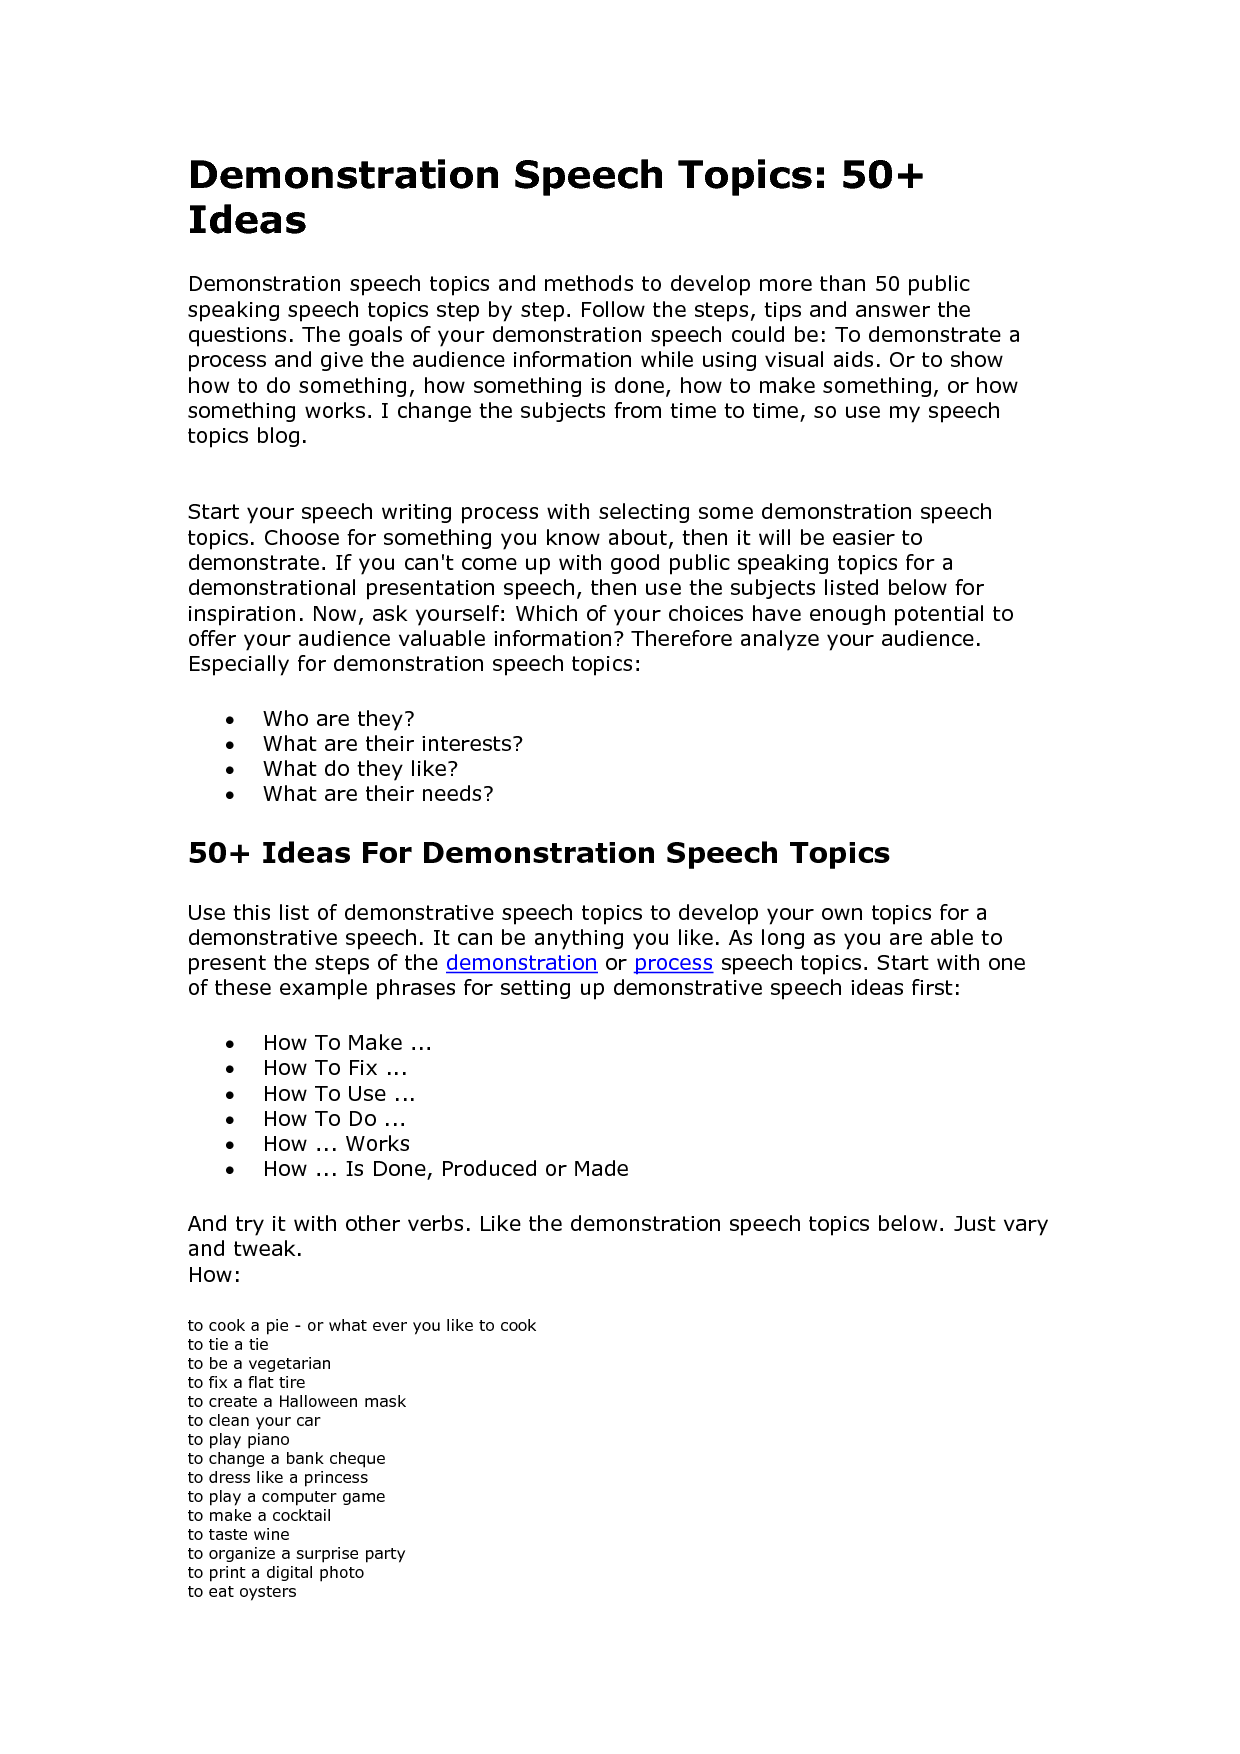 Demonstration Speech Ideas